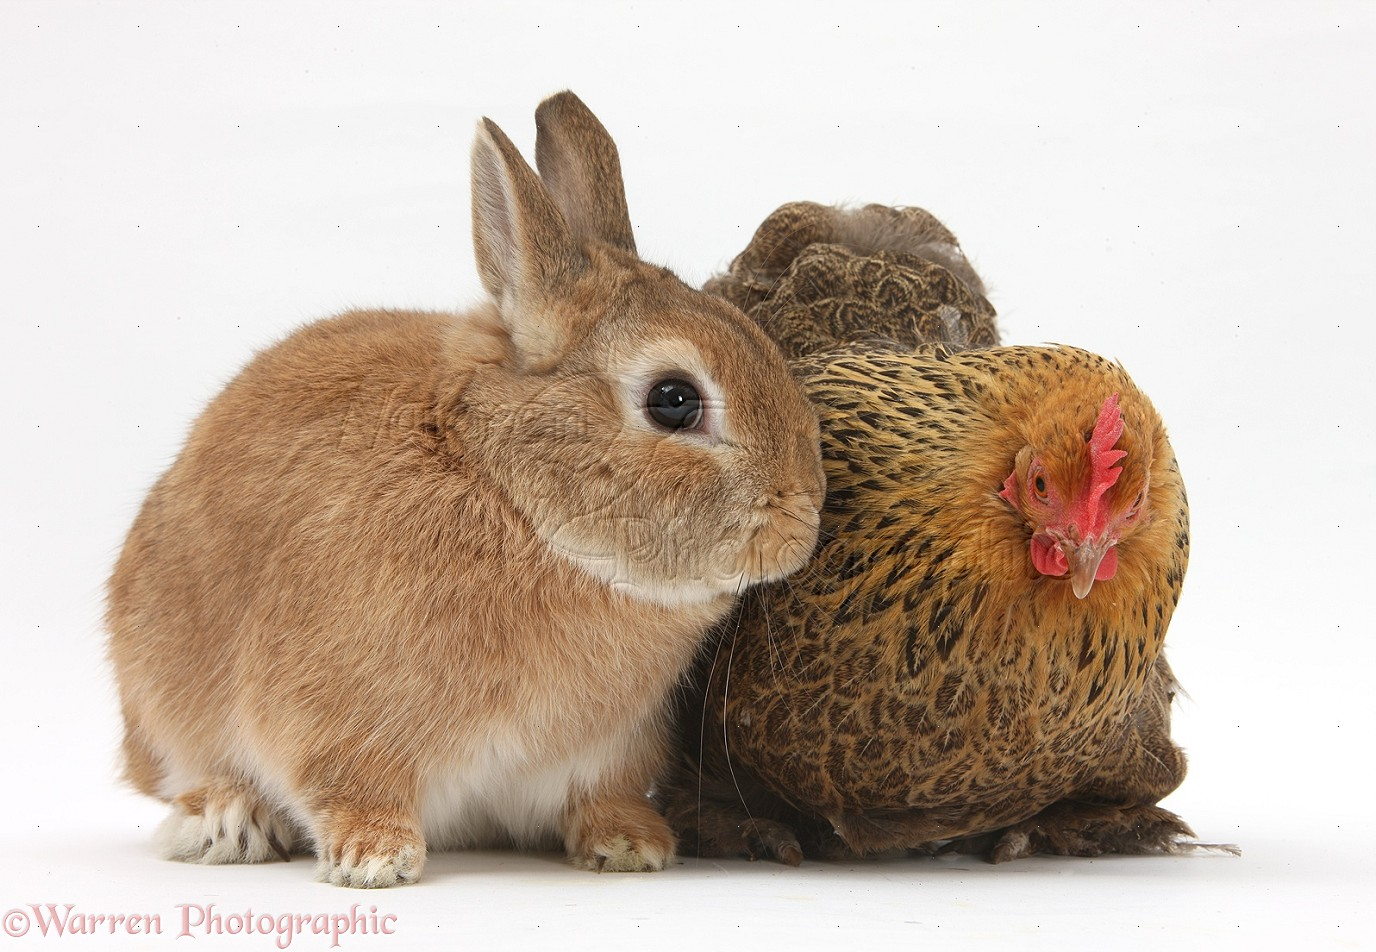 Rabbits & Chickens don't mix